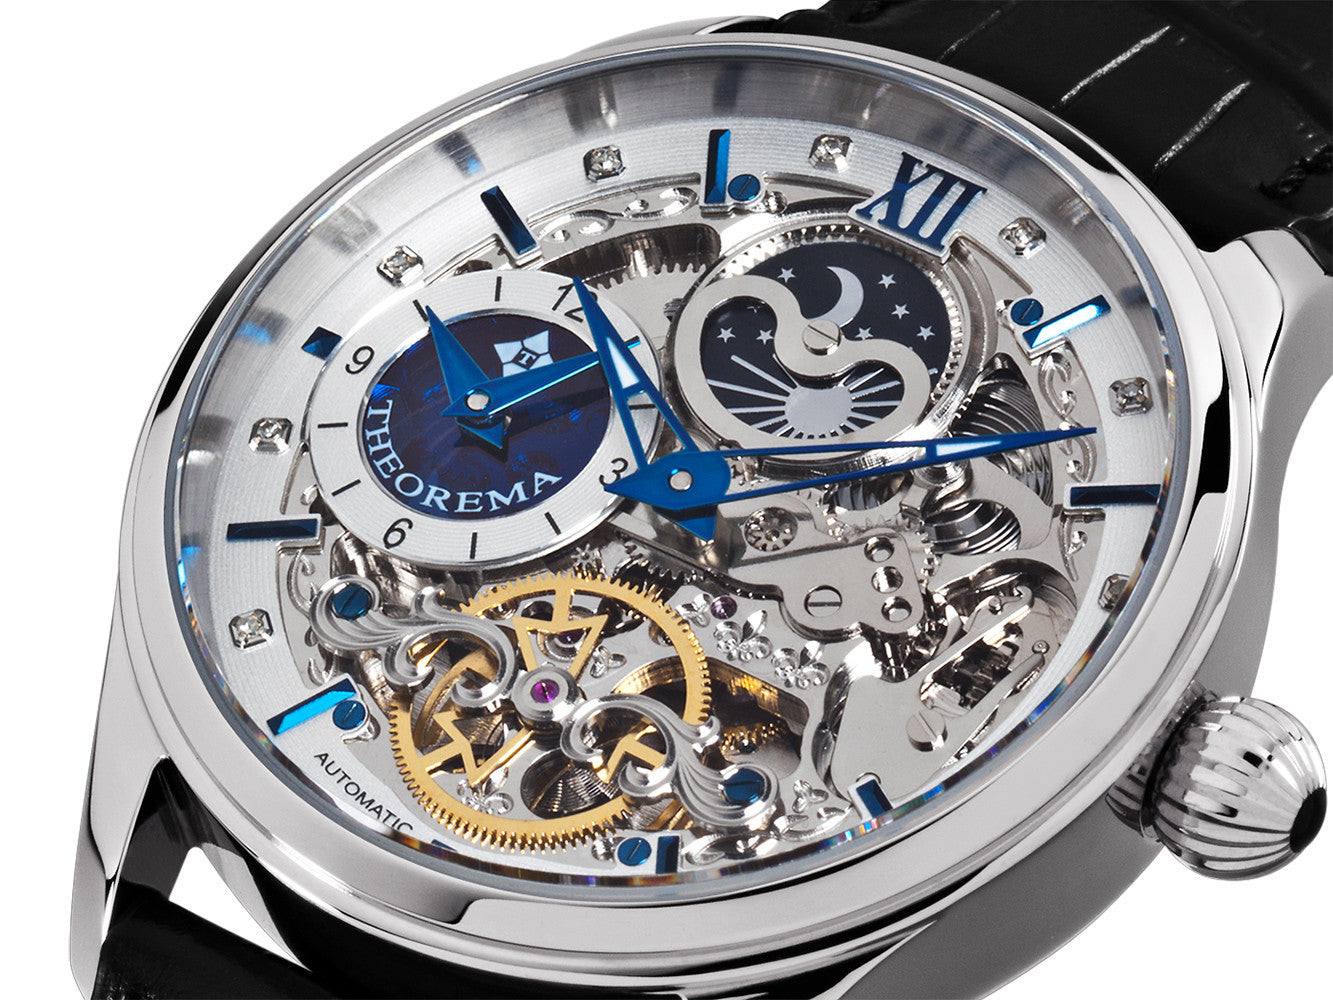 Cannes Theorema GM-3004-1 Made in Germany